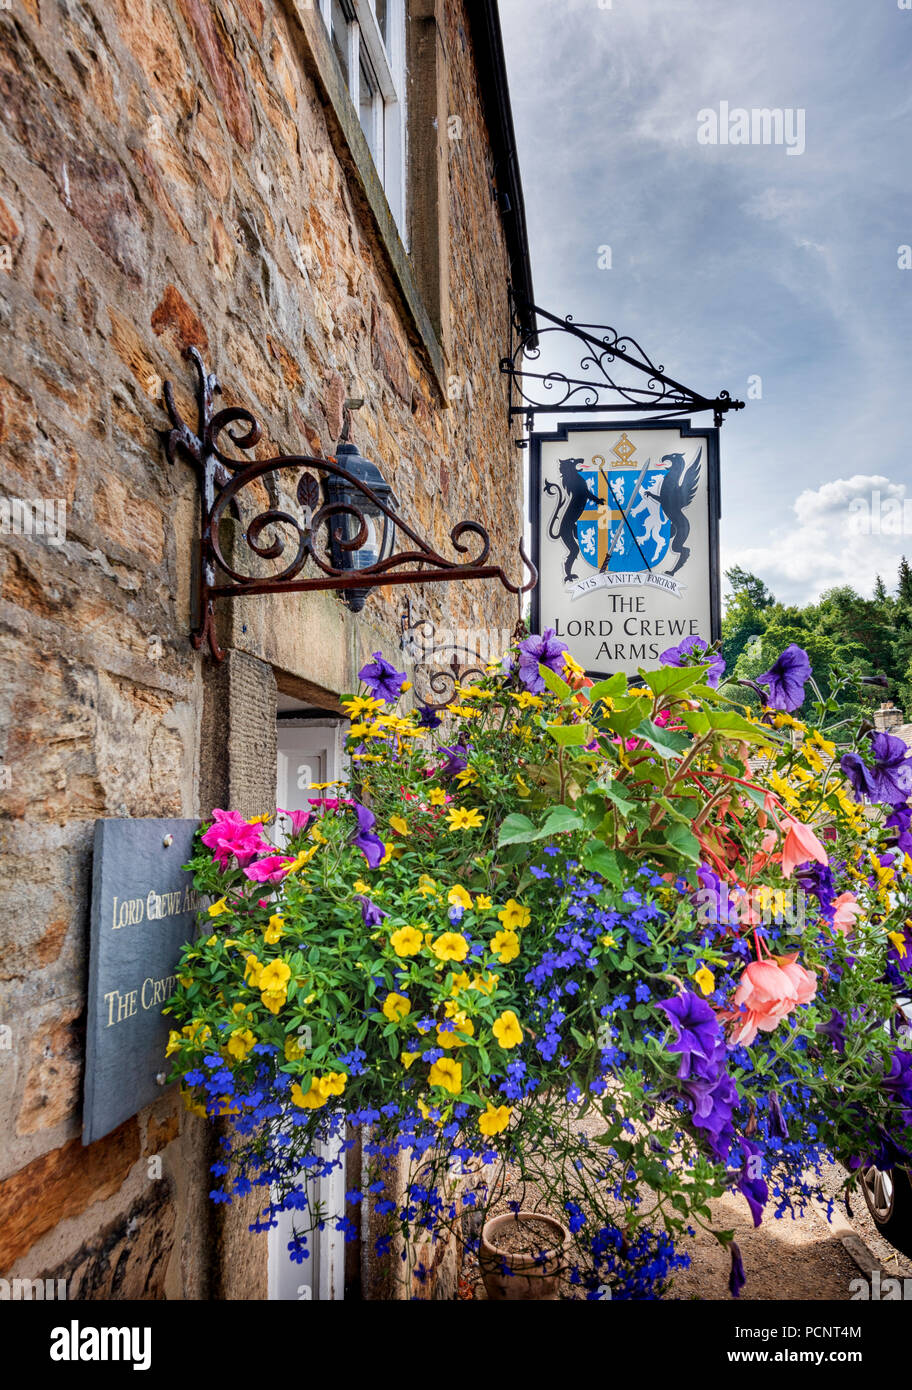 Lord Crewe Arms pub and hotel in Blanchland a picturesque and historic village in Northumberland in North East England - Stock Image